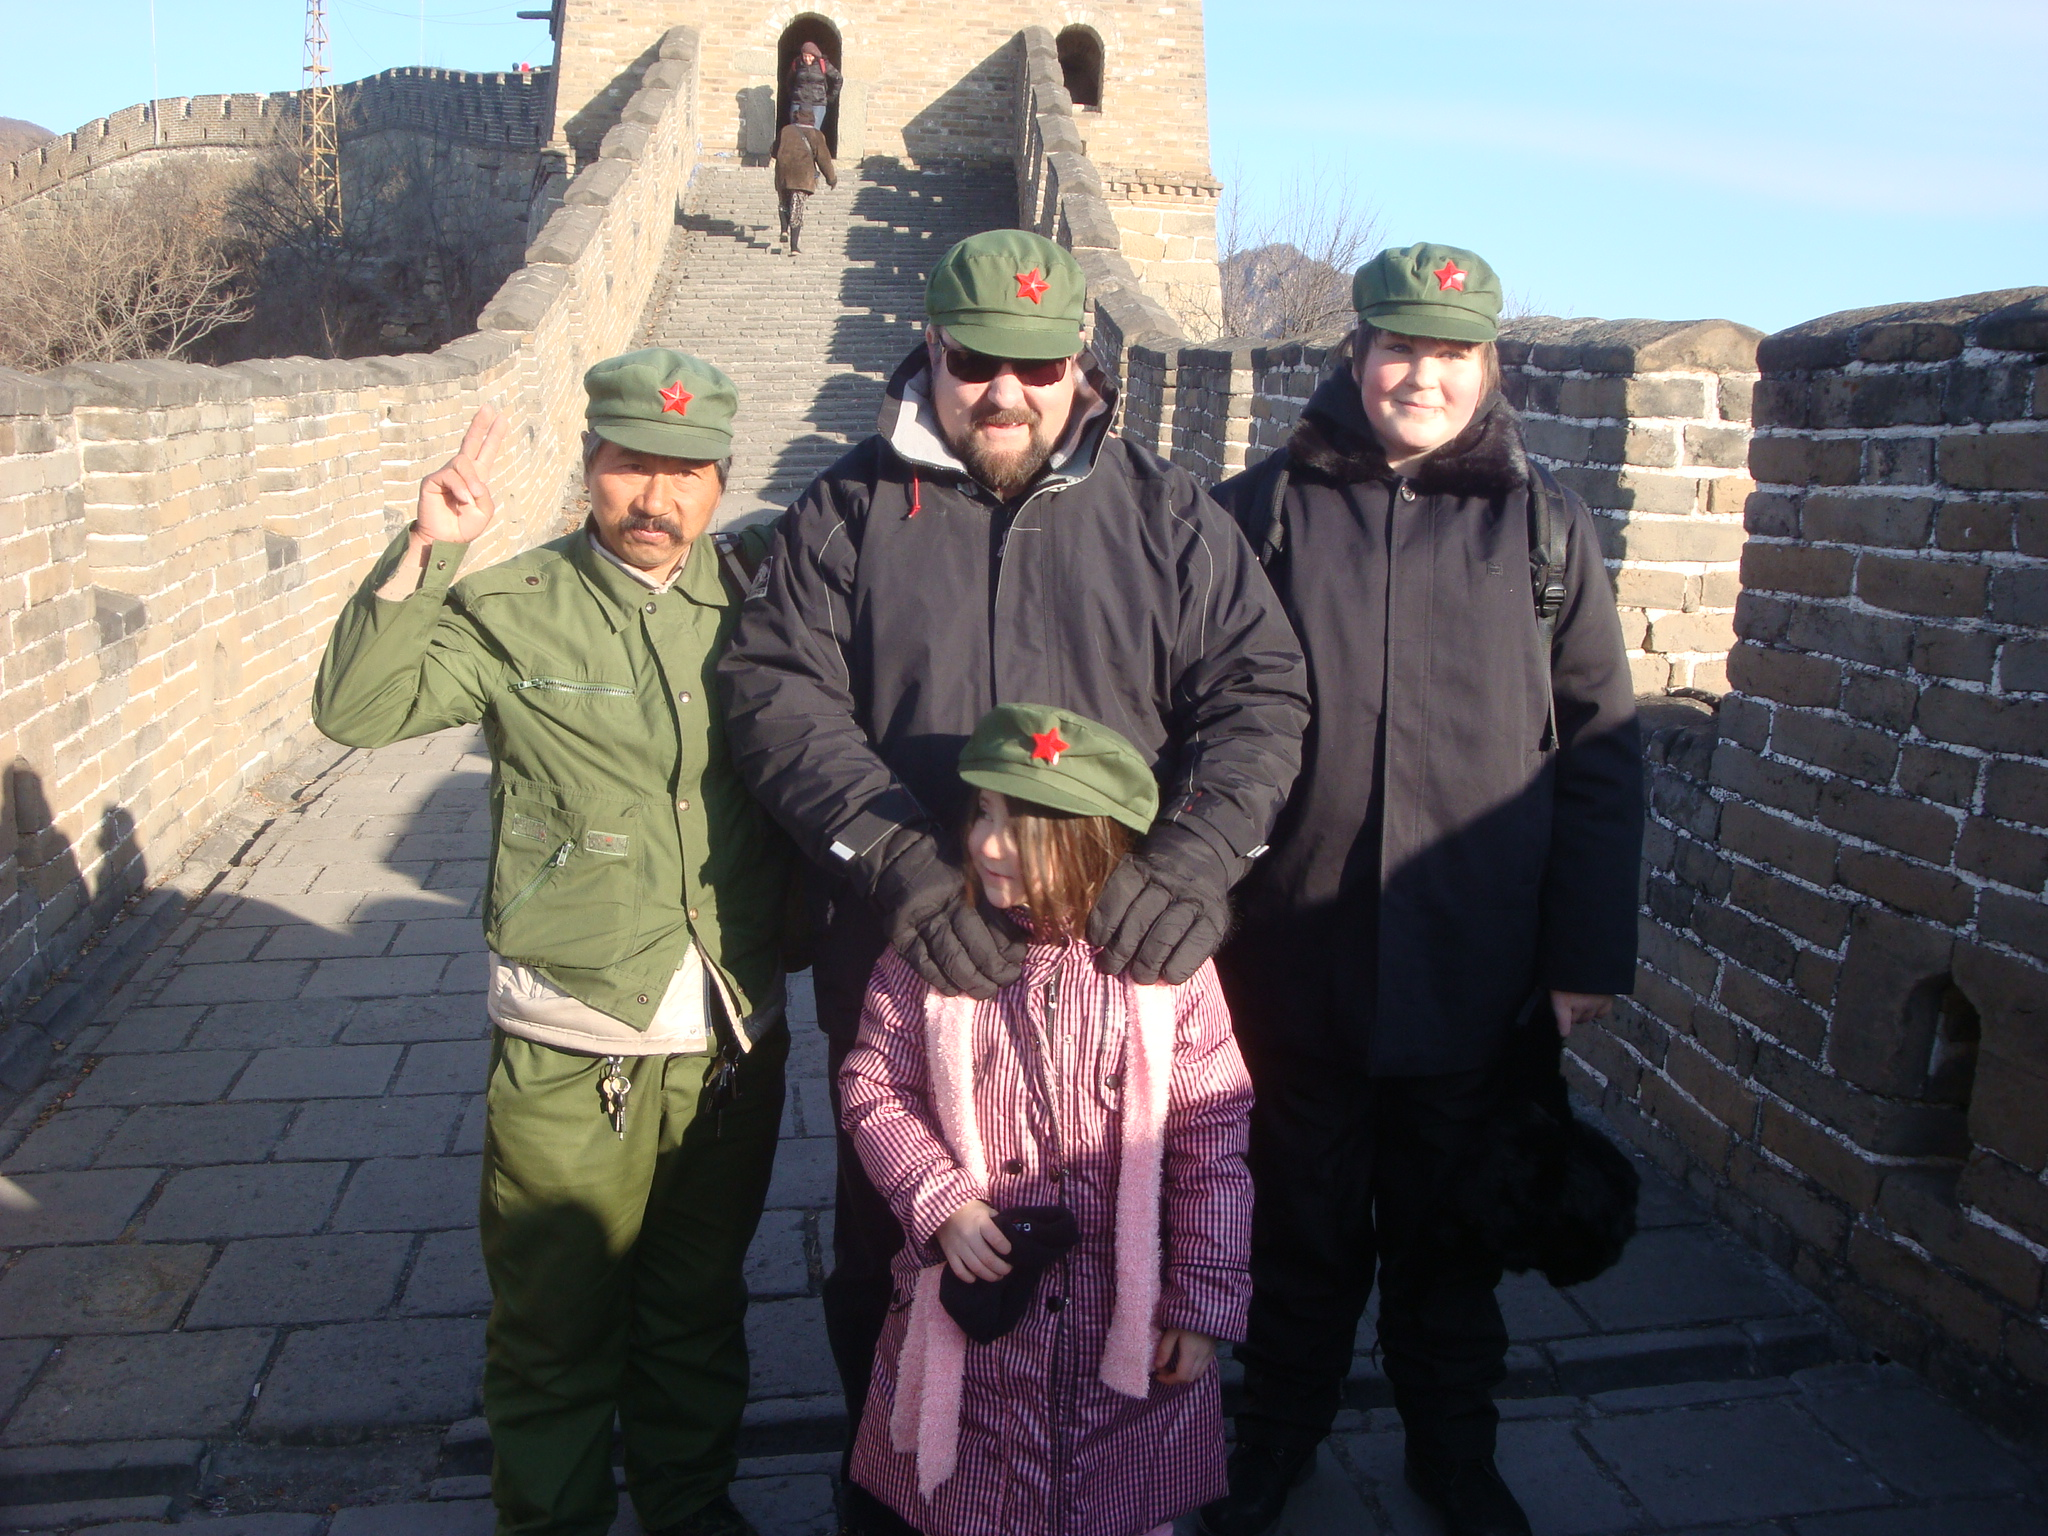 On the Great Wall of China, Mutianyu